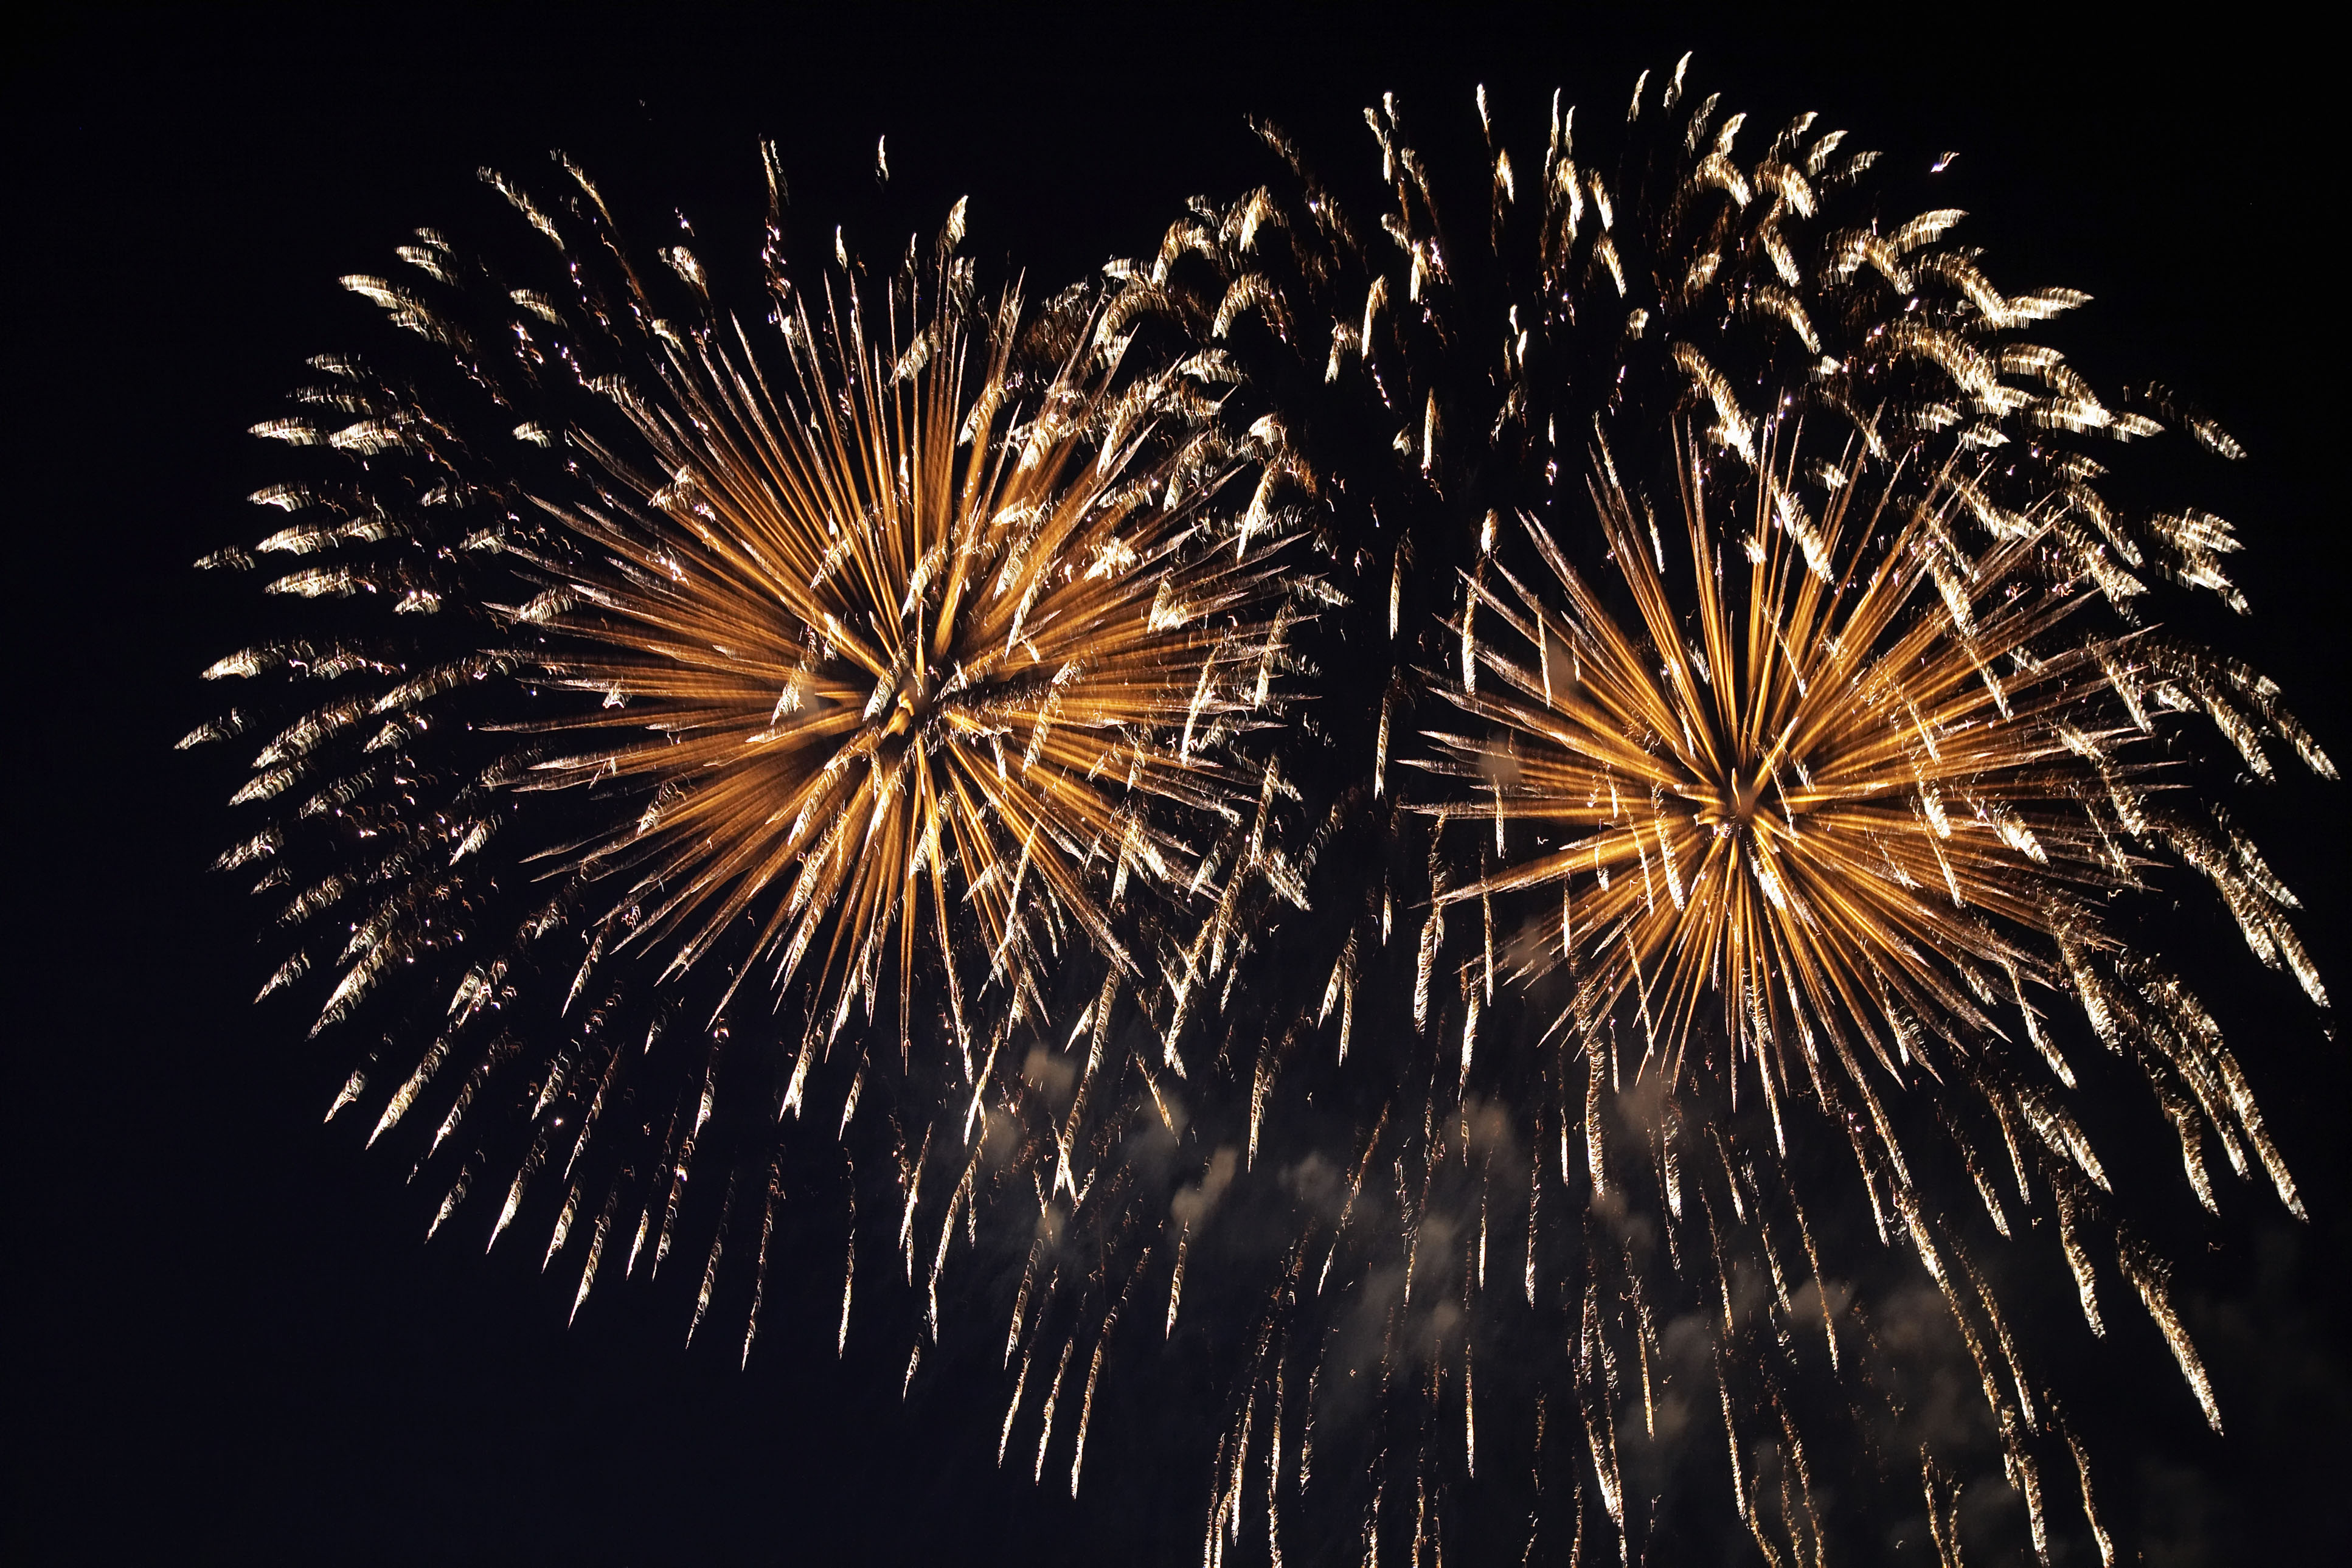 Large colorful fireworks photo